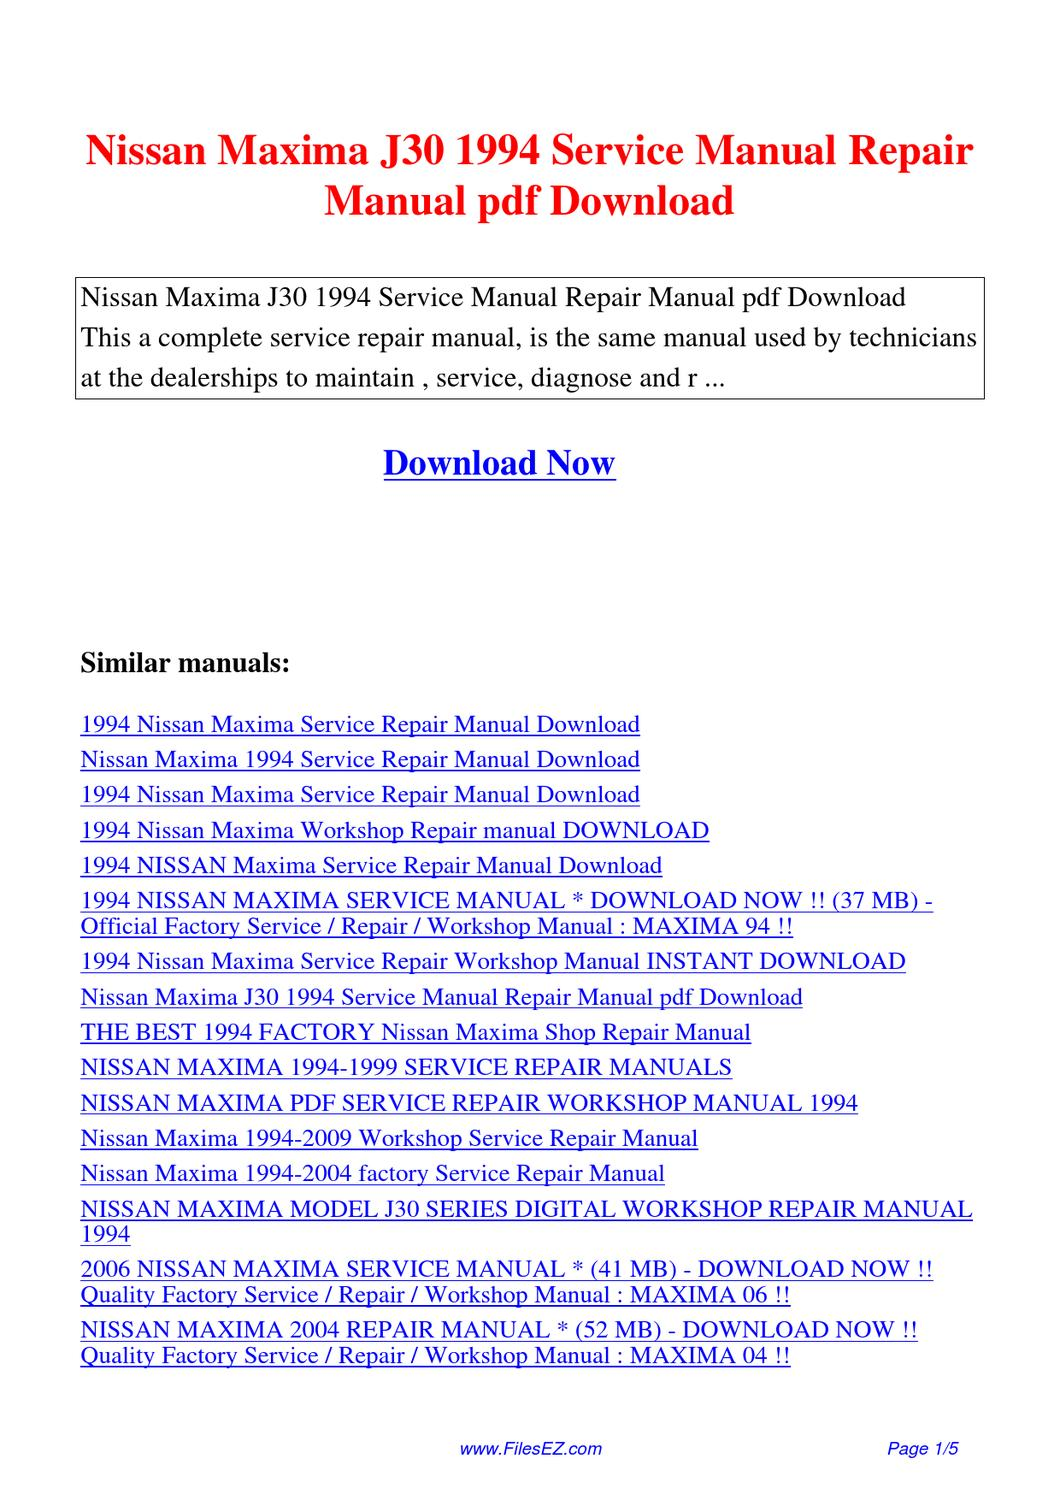 Nissan Owners Manual PDF Download